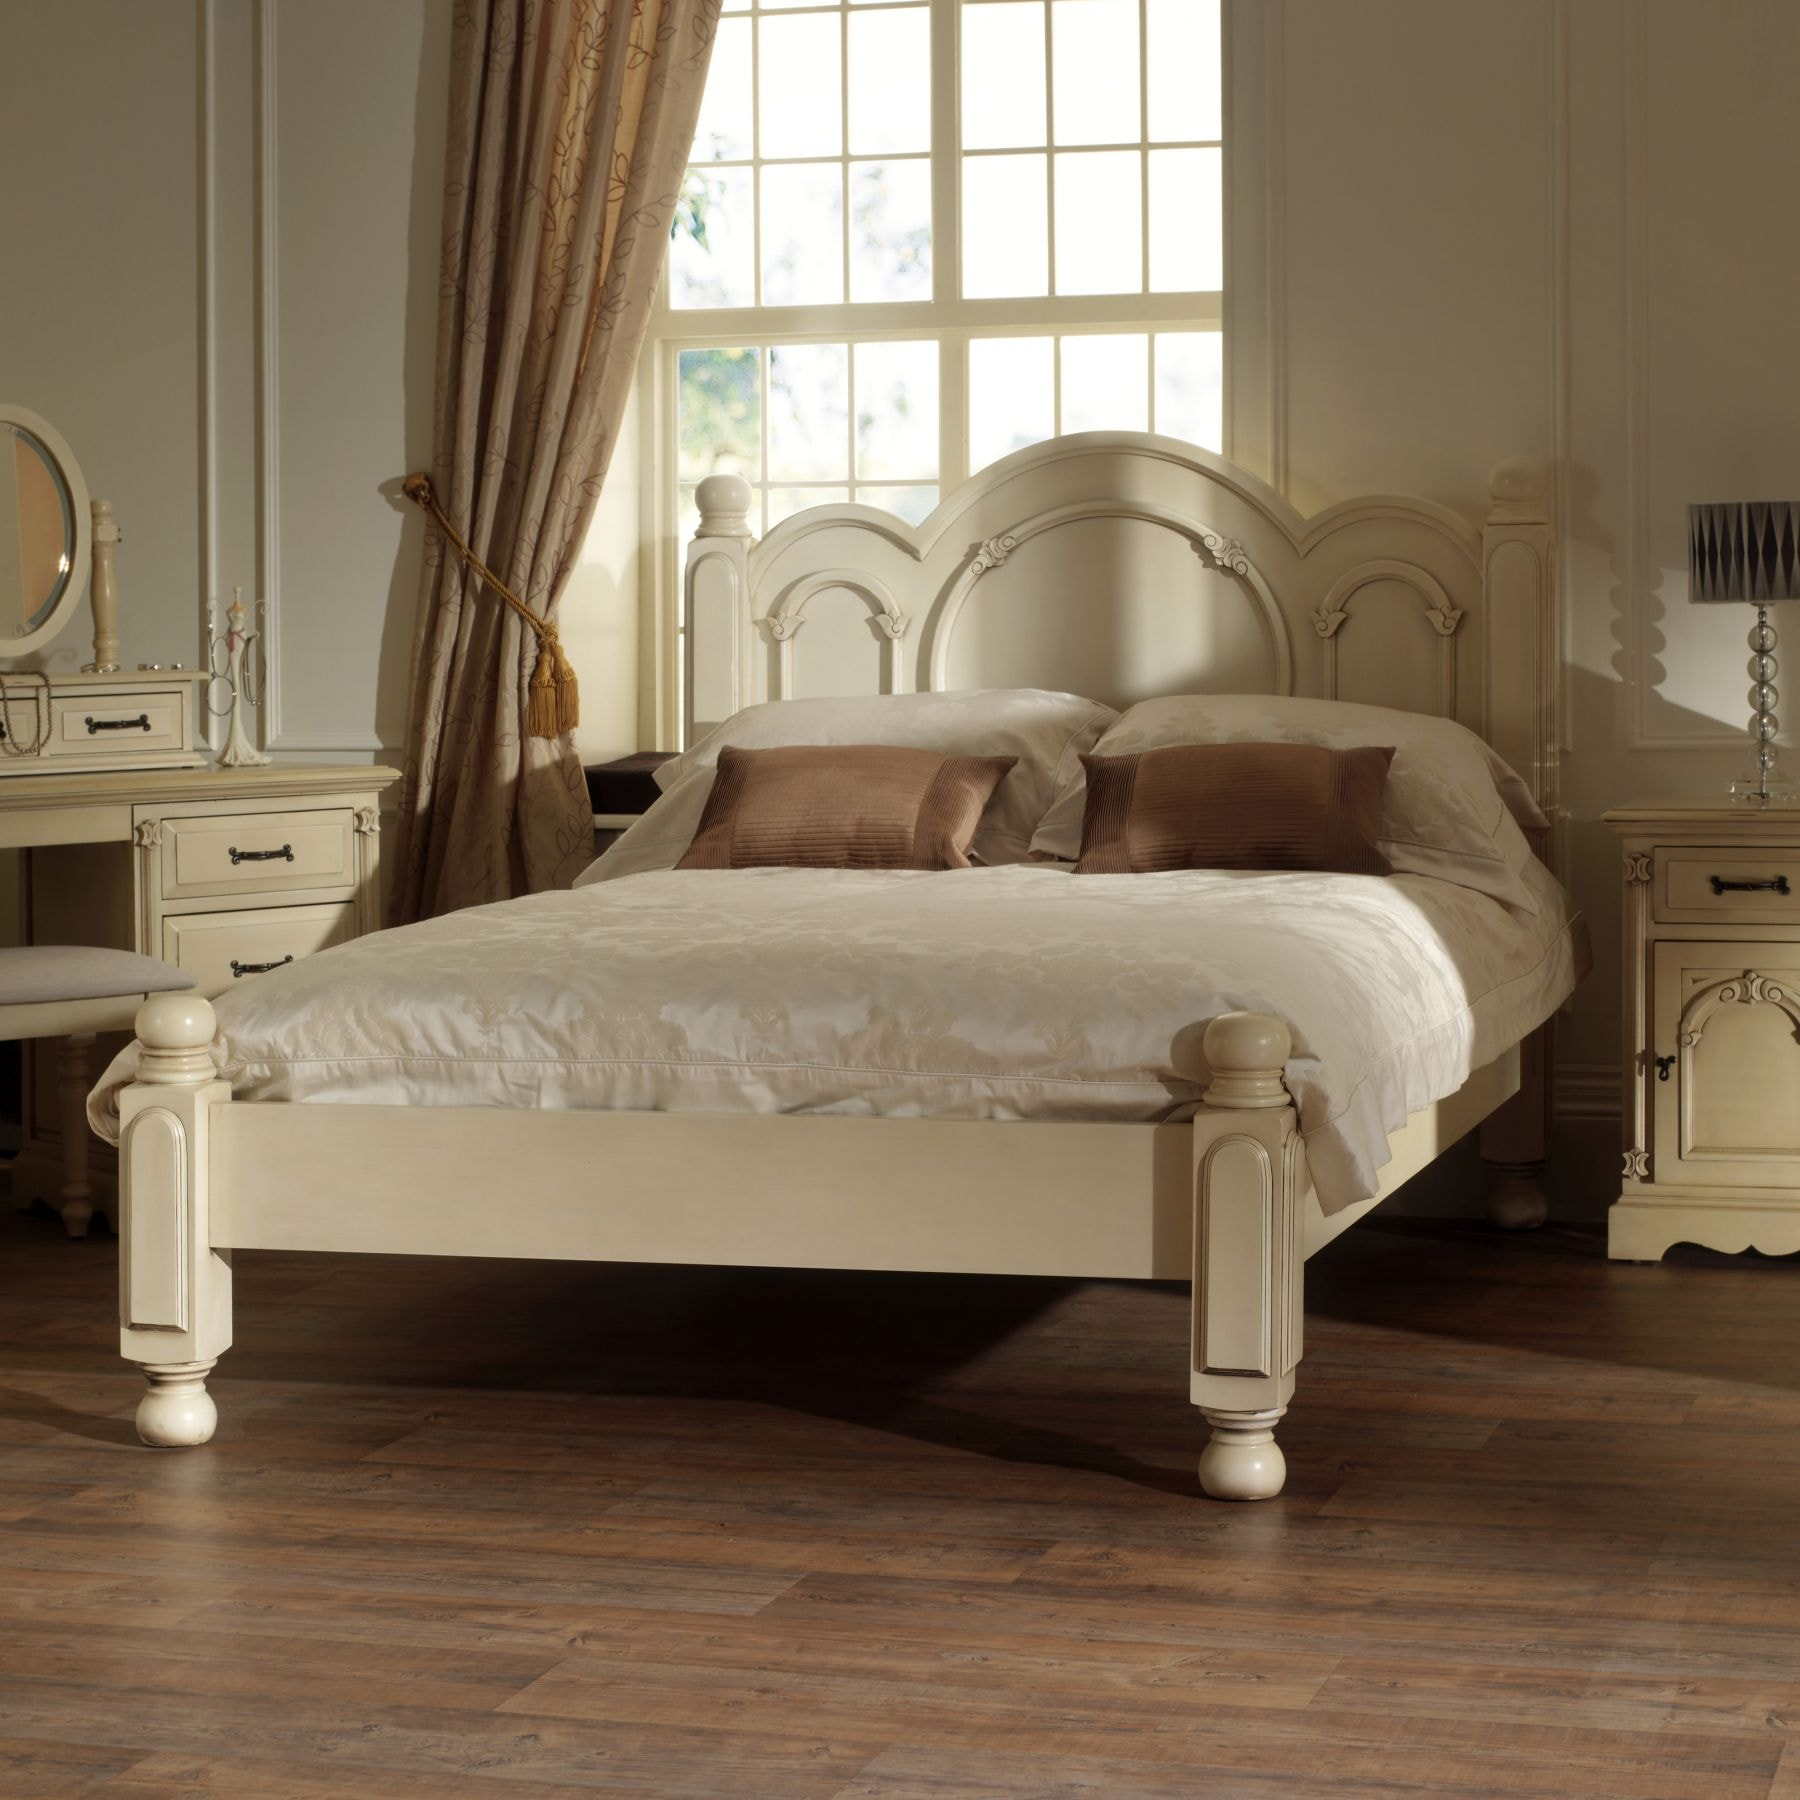 Wonderful Victorian Antique French Style Bed